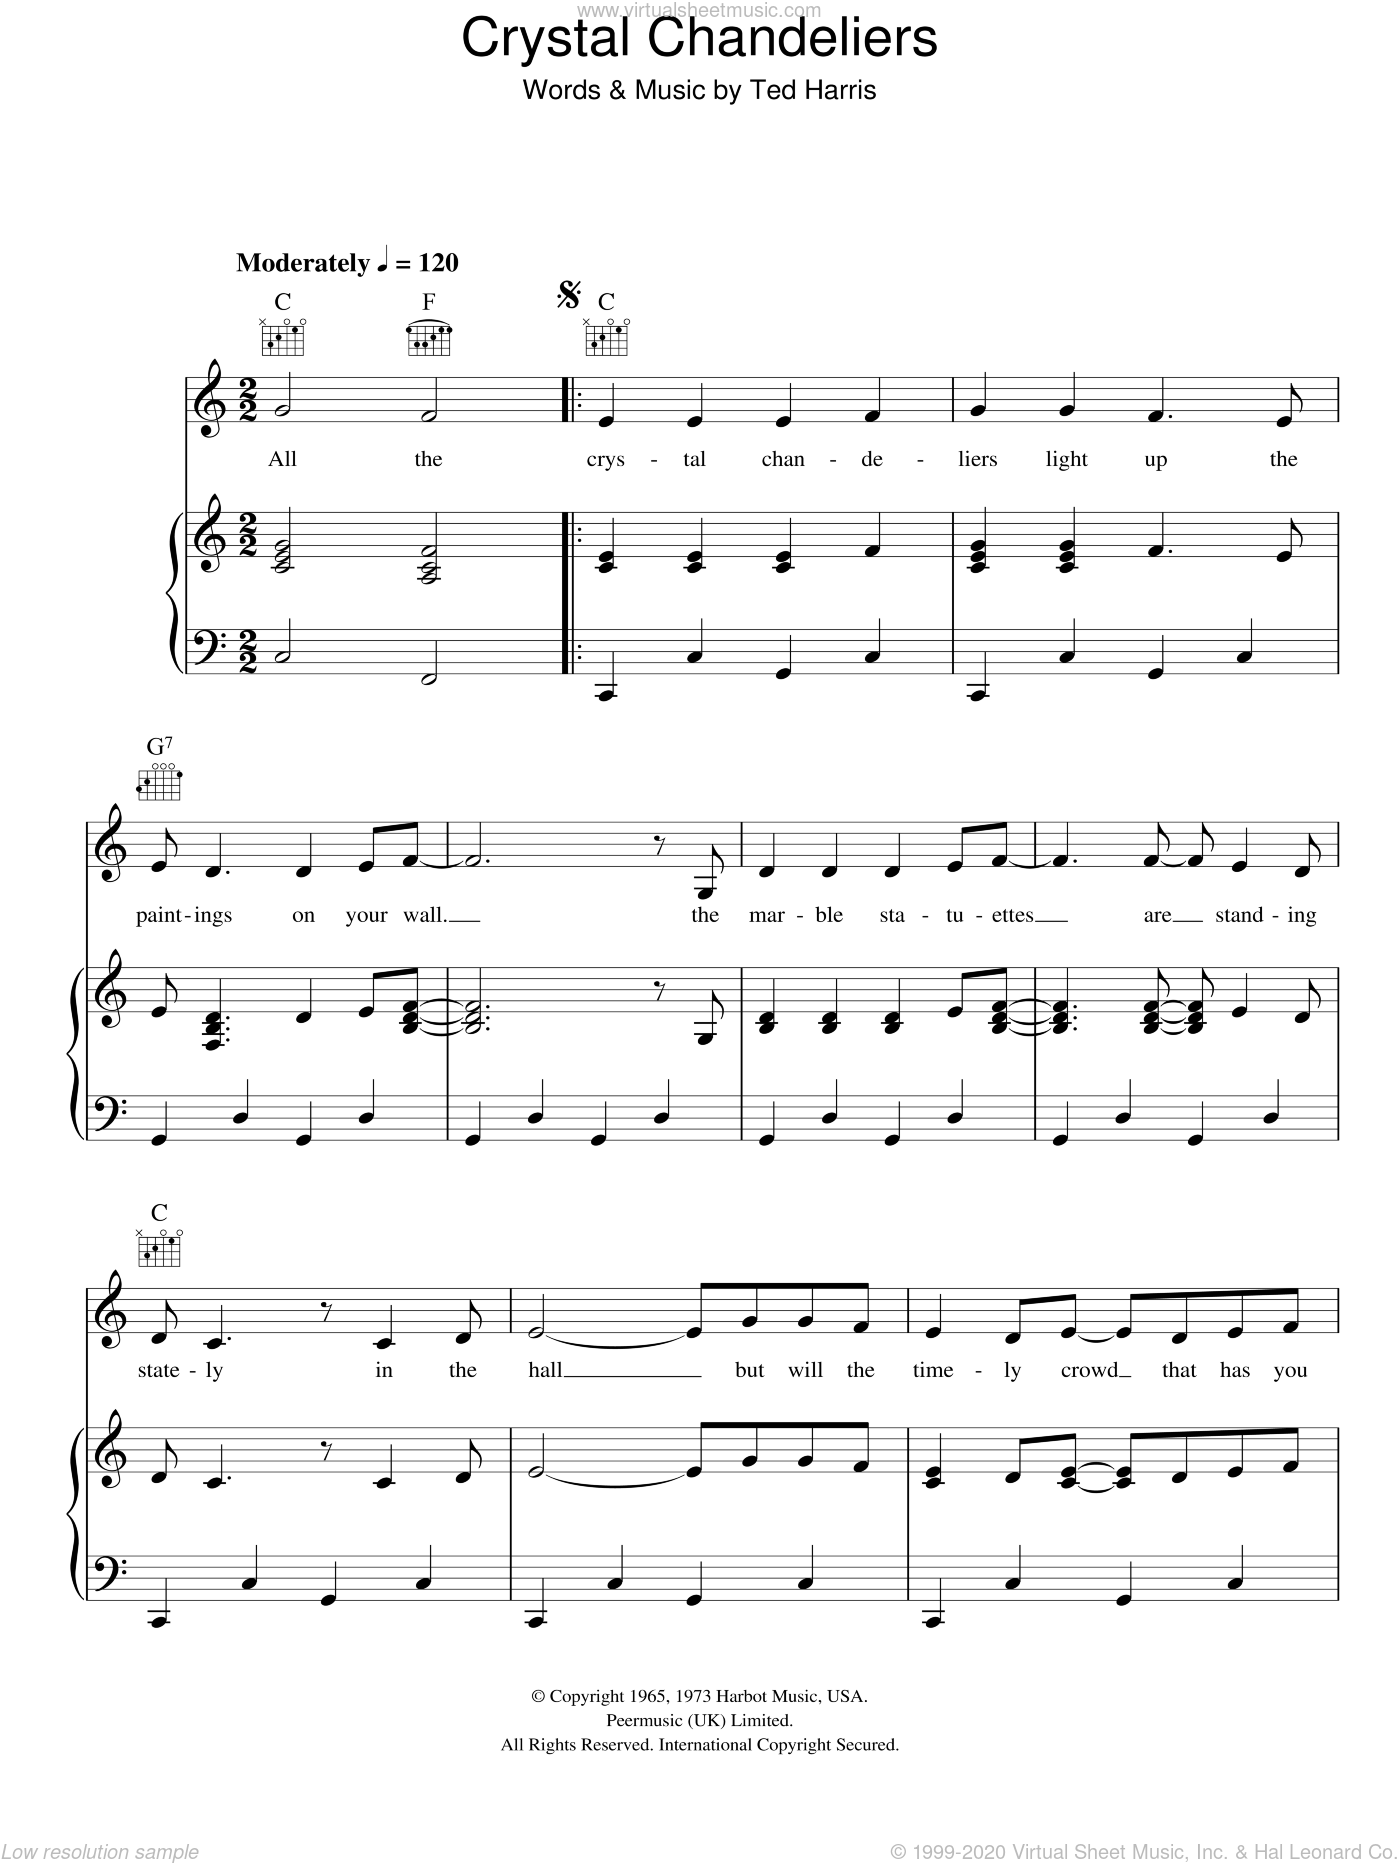 Crystal Chandeliers sheet music for voice, piano or guitar by Ted Harris